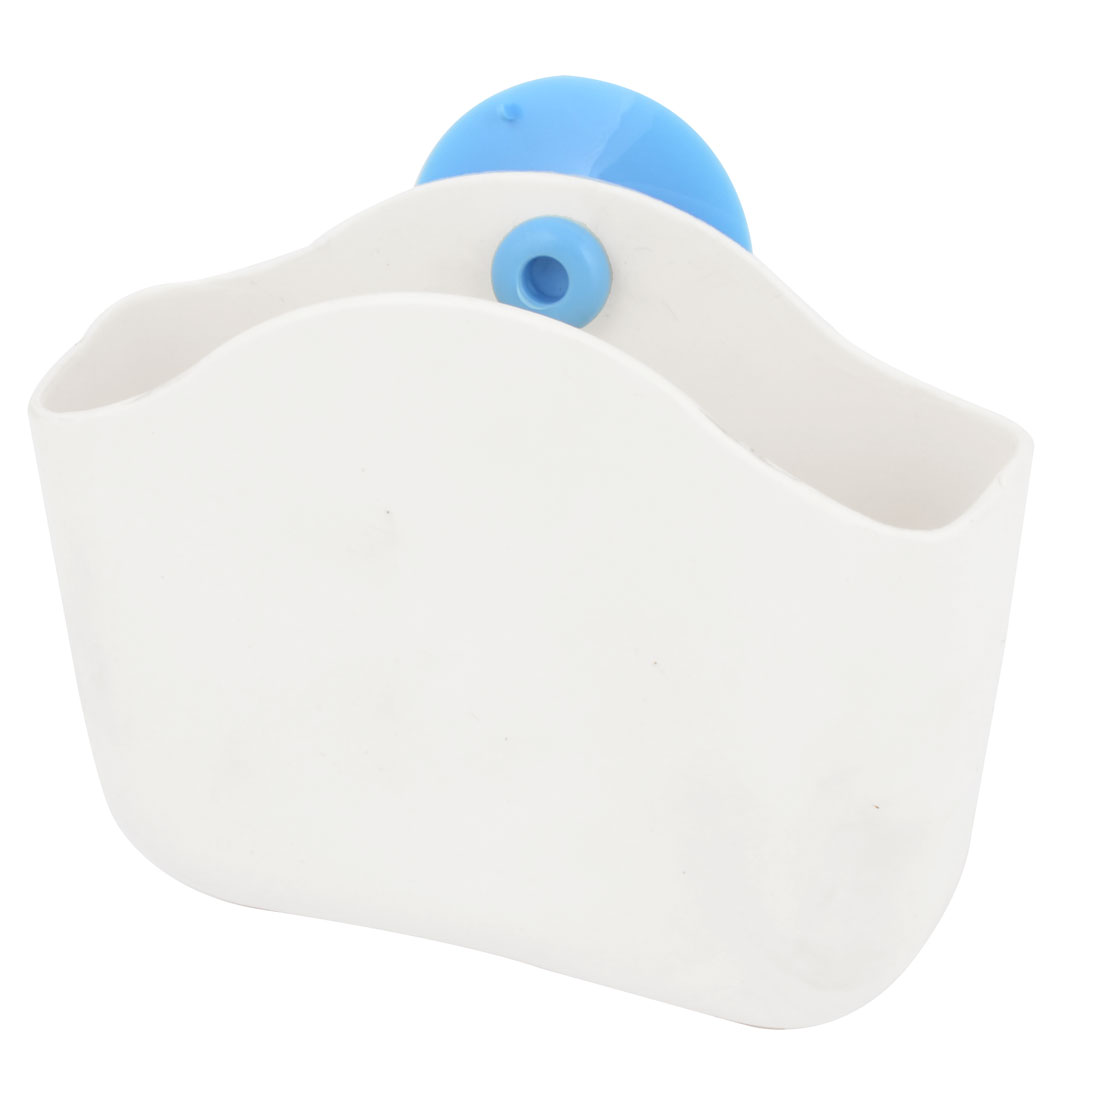 Kitchen Bathroom Blue White Suction Cup Wall Shelf Toothbrush Soap Holder Wash Rack Organizer